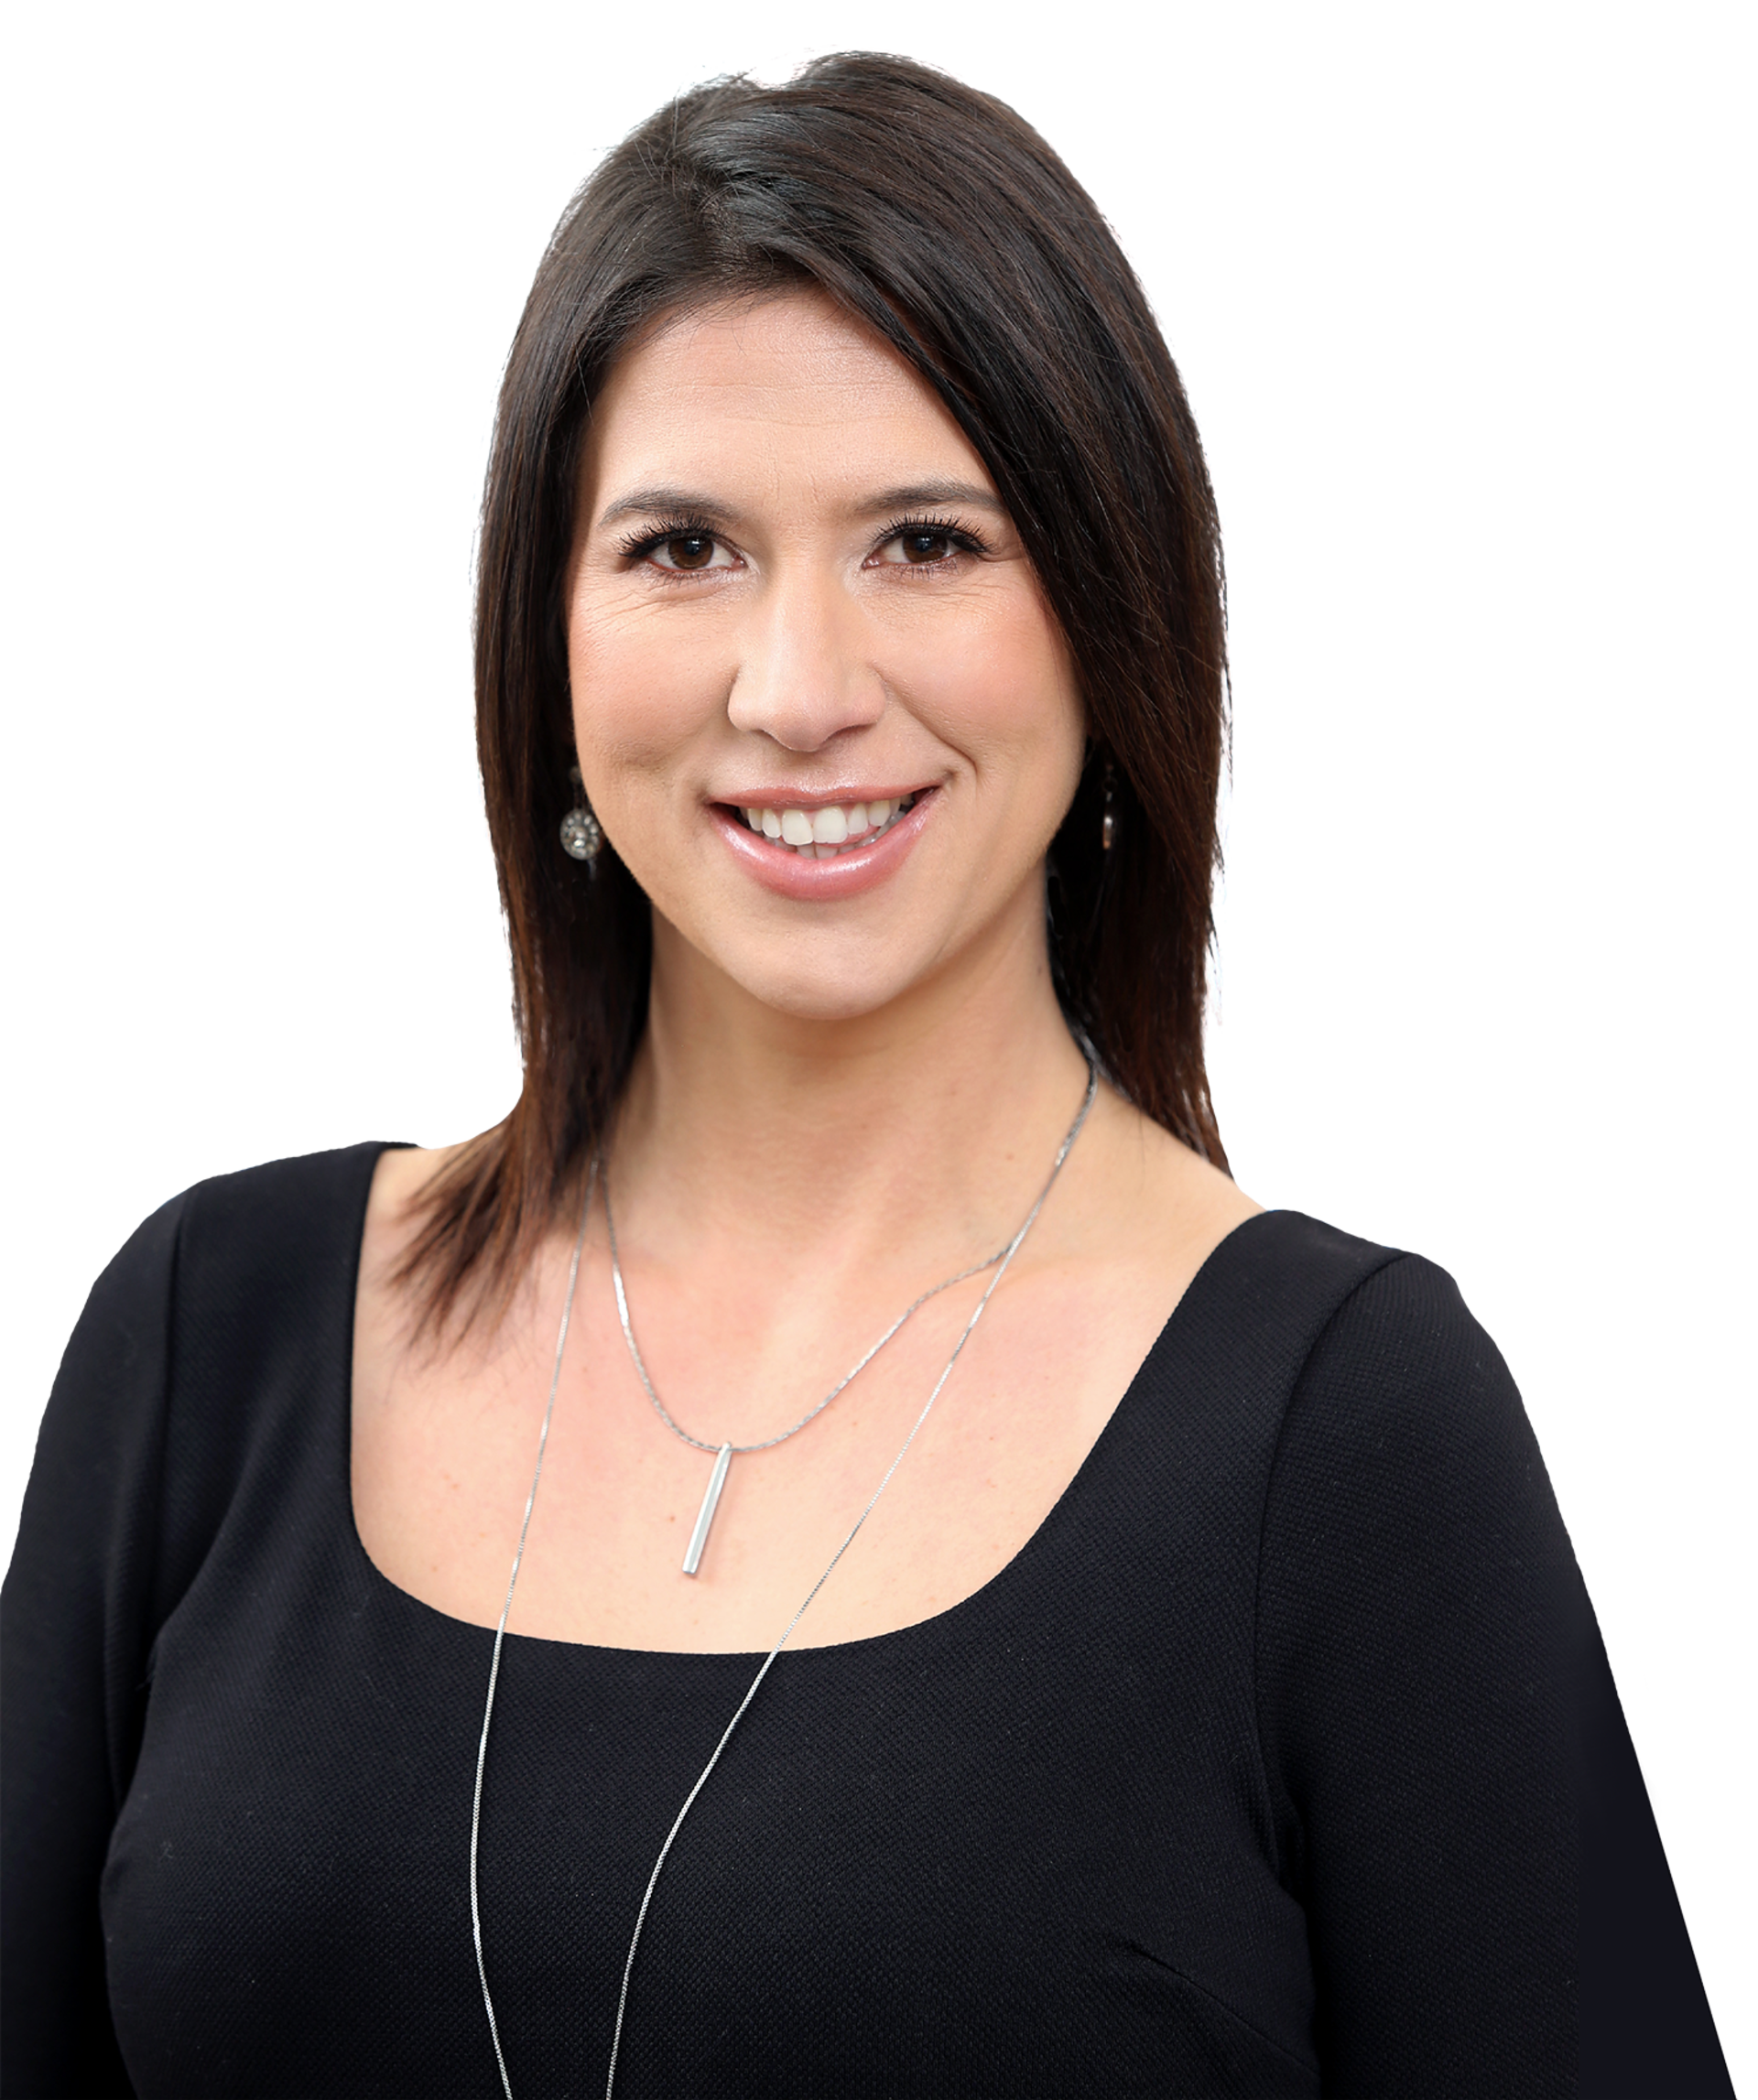 Meet Julie Waldner, the newest real estate agent on the Allen Edge Team, who circled the globe before coming to Sioux Falls!